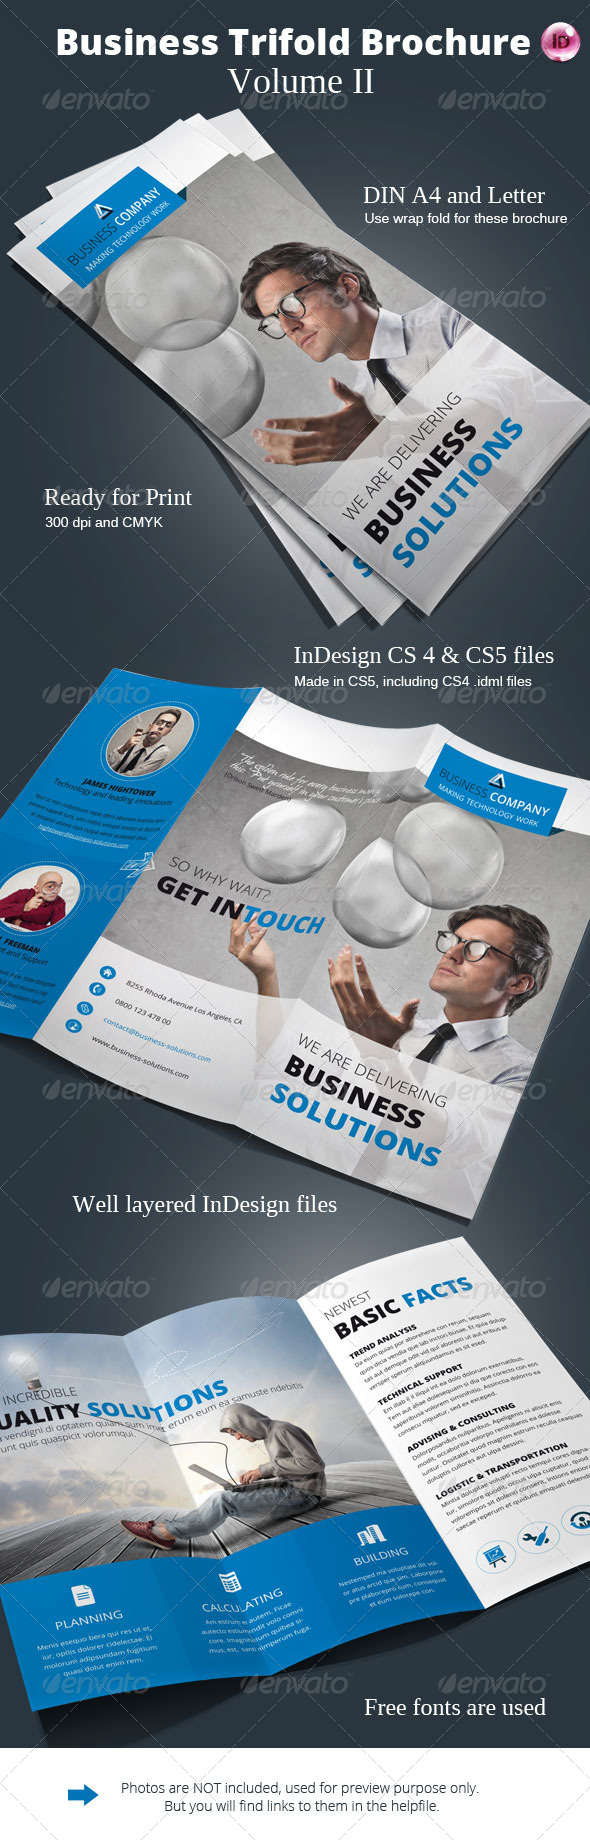 GraphicRiver Business Trifold Brochure Vol II 6543189